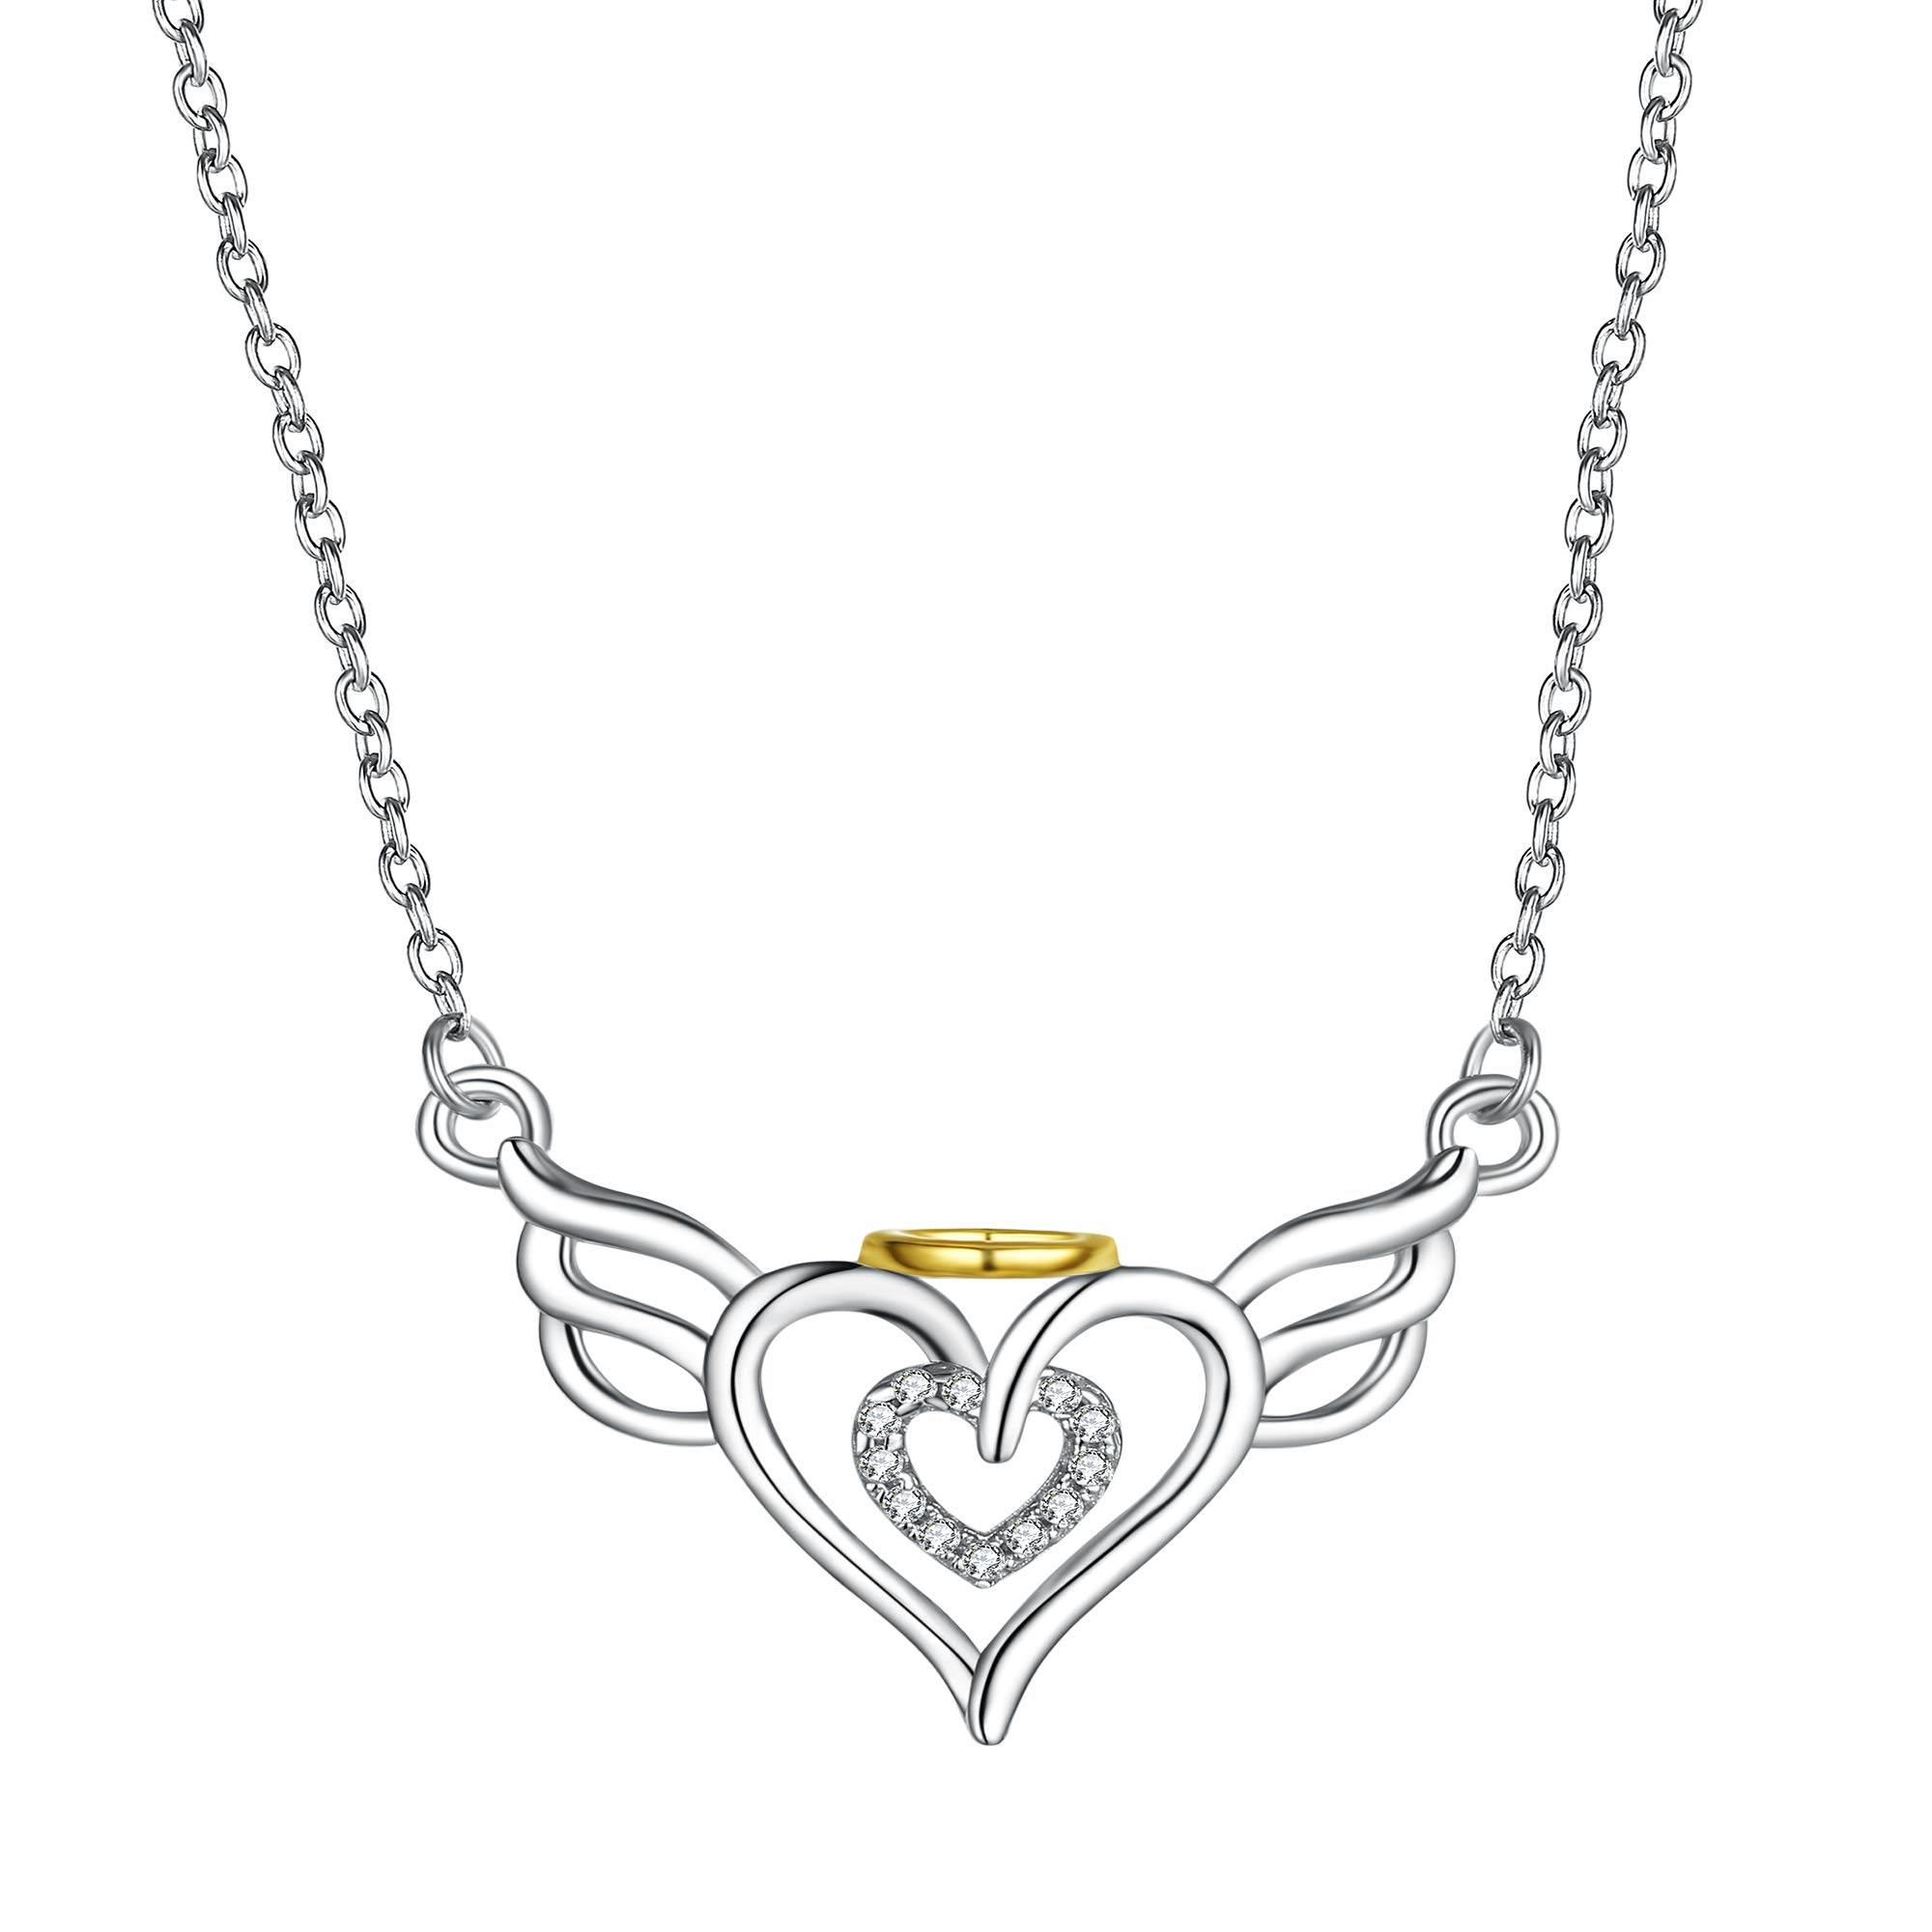 Sterling Silver Pendant Necklaces - Women 18k Gold Plated Charm Jewelry - Wings Heart